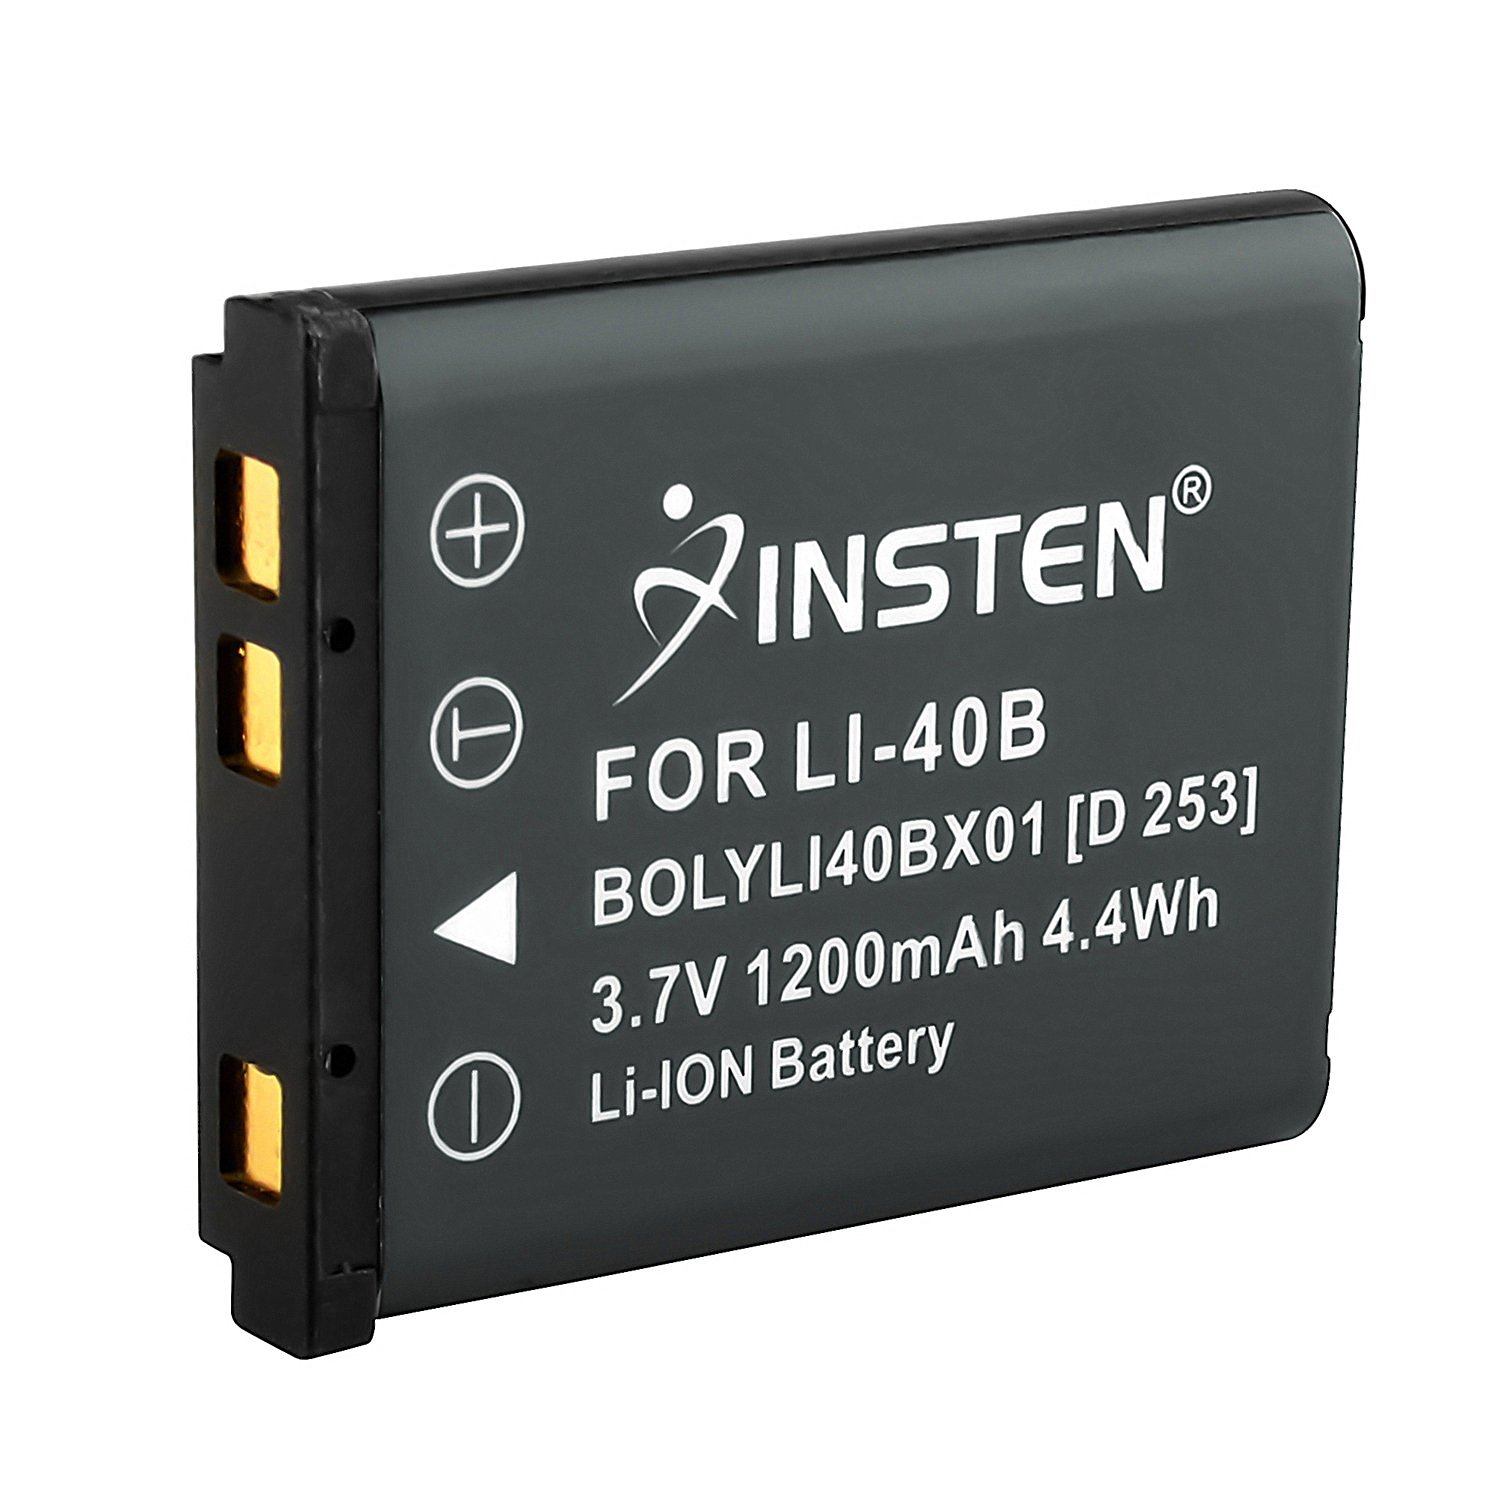 Insten Replacement Olympus Li-40B Lithium Ion Rechargeable Battery Compatible with Olympus D-630 Zoom / FE-5500 / IR-300 / SP-700 / X-600